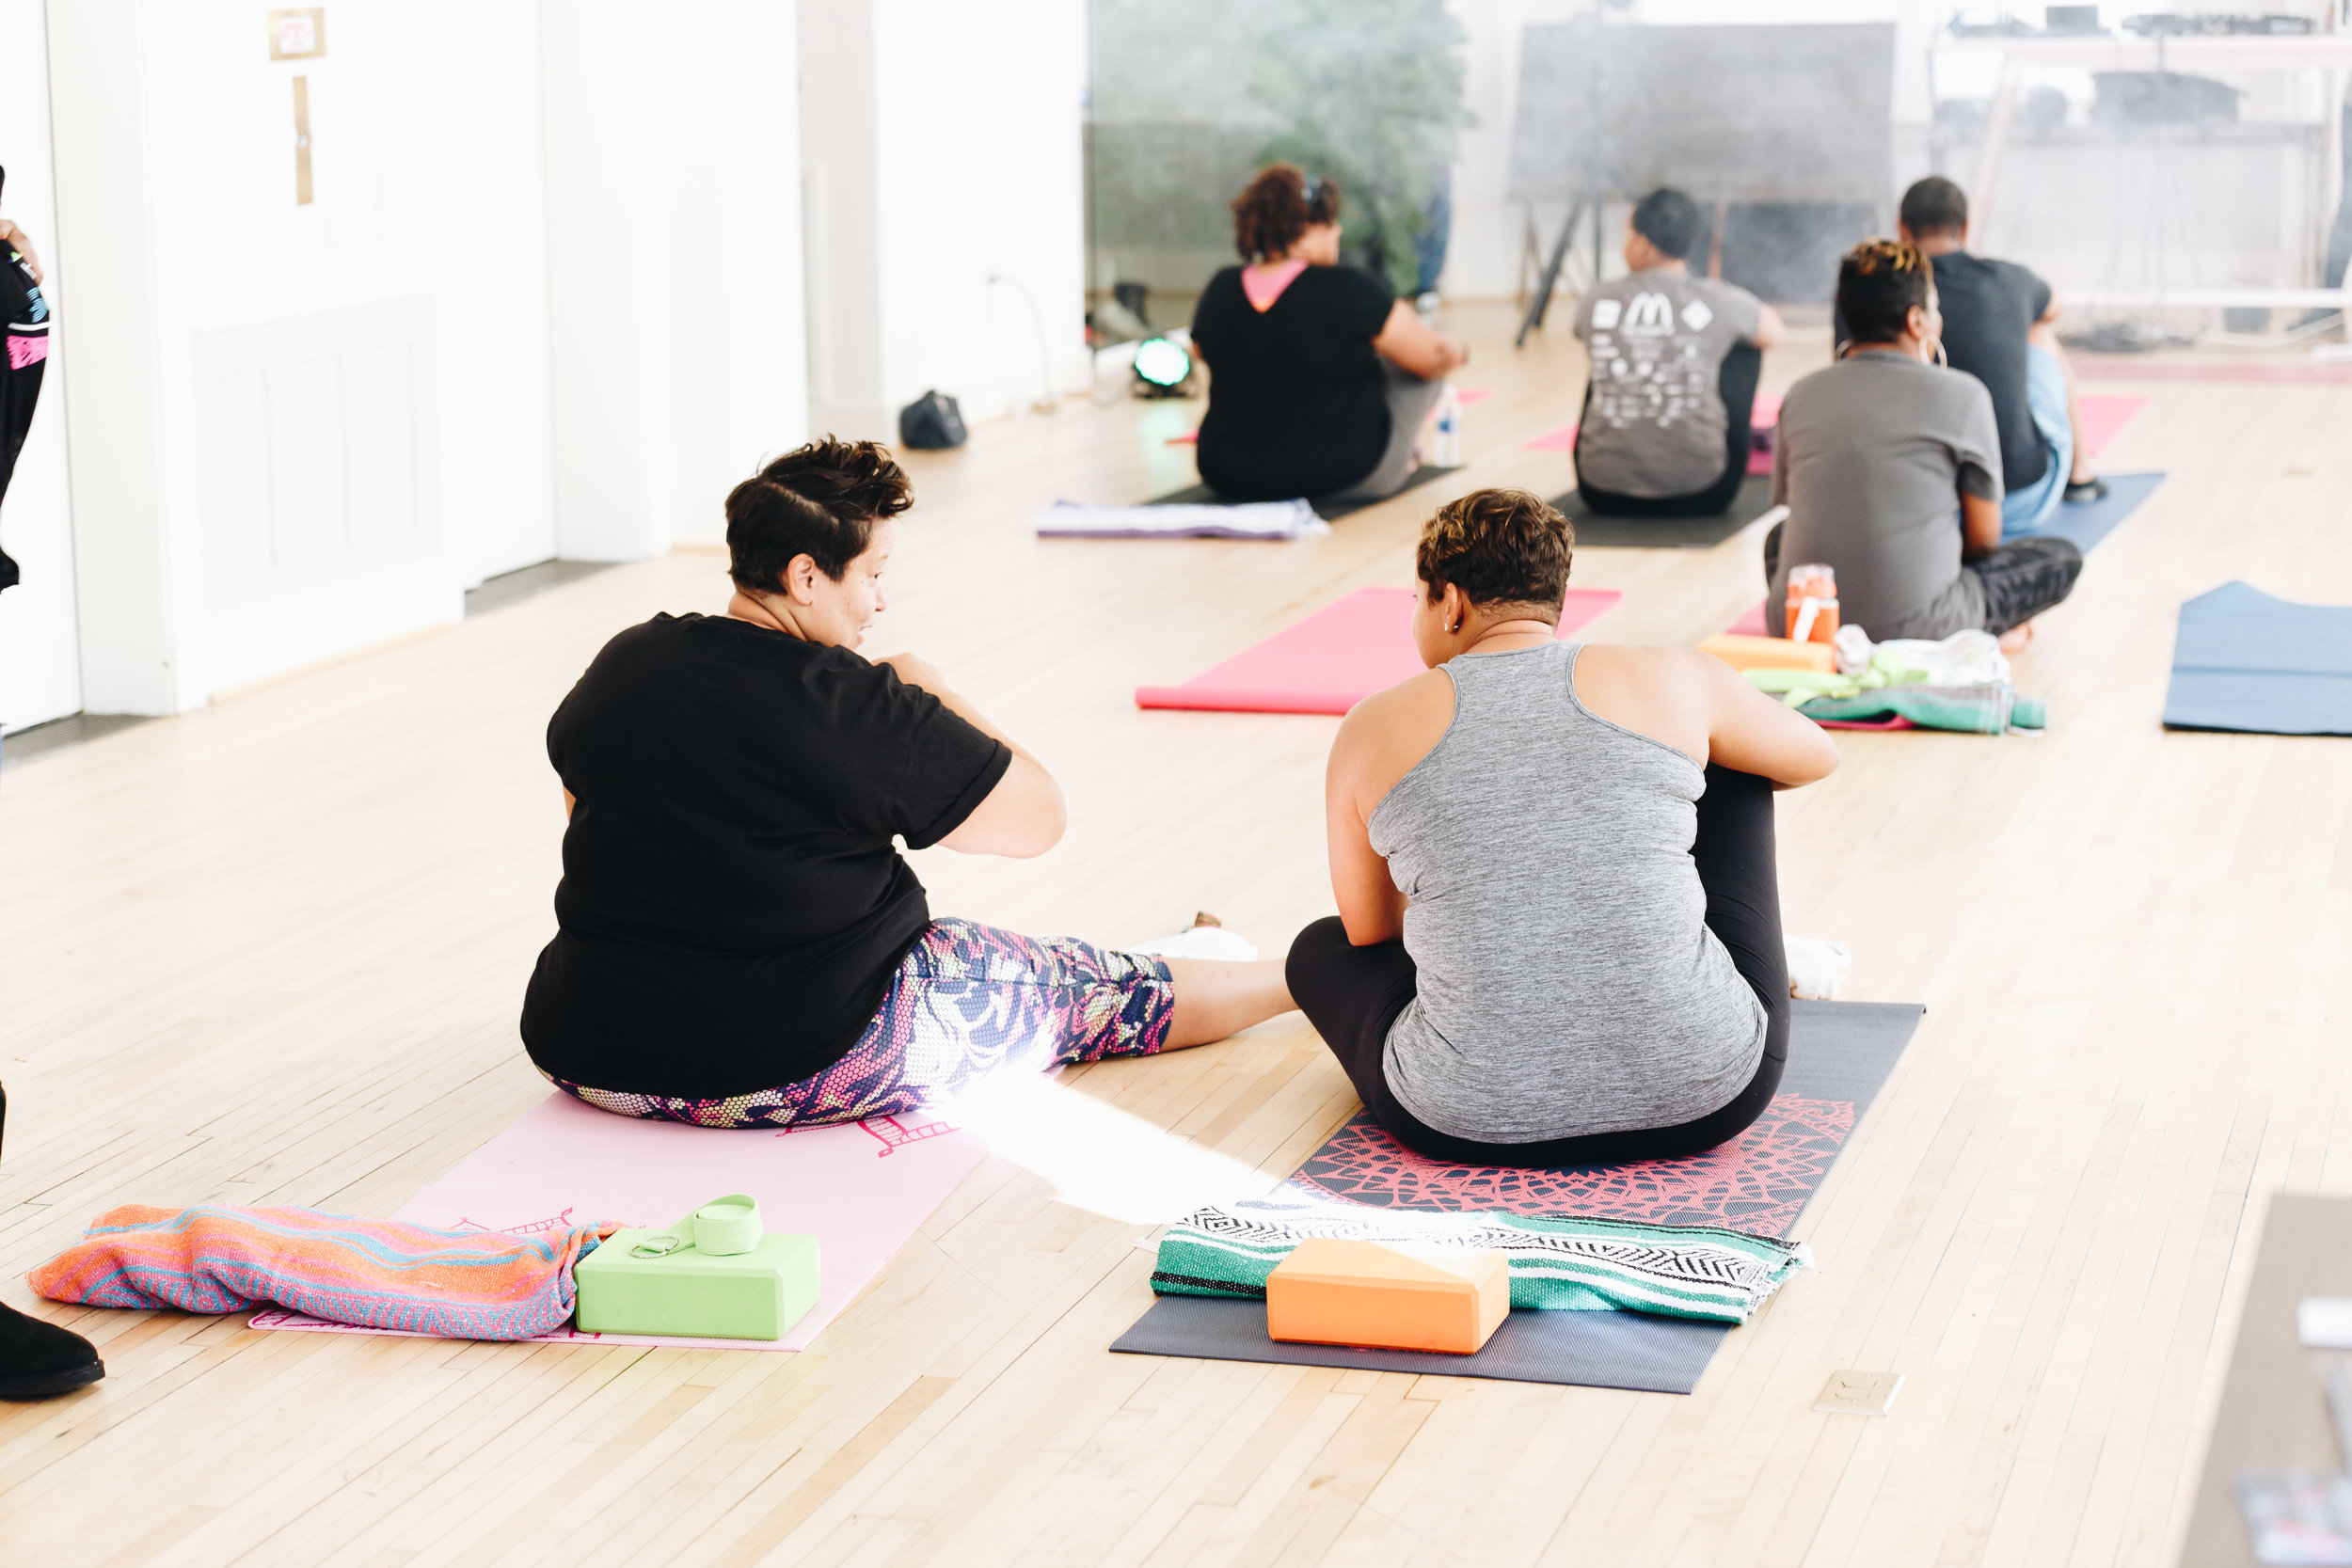 What yoga is not: - • Perfecting Instagram worthy postures• A Competition• A Religion• Just A Series Of Asanas (Poses)• Hypnosis• Cardio Training• A Fashionable Fad• A Place Where You're Judged